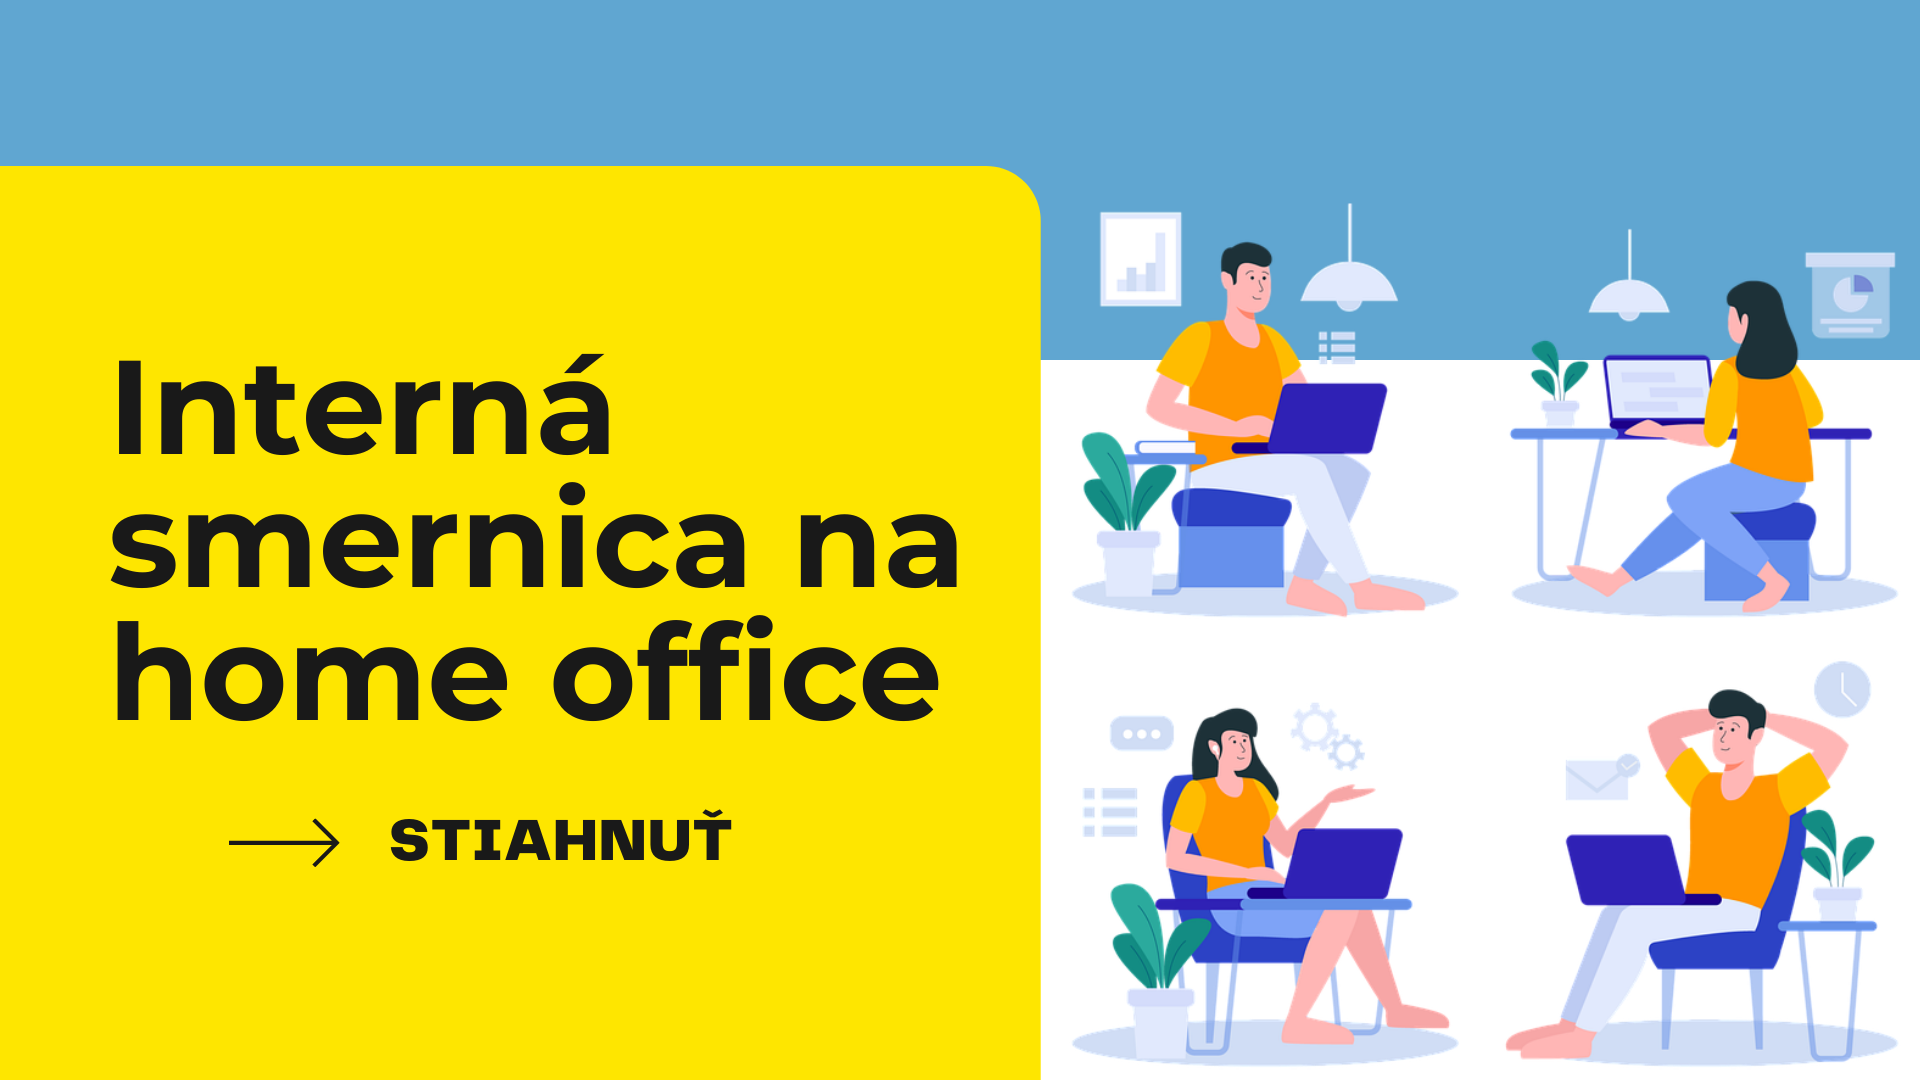 Interná smernica na HOME OFFICE